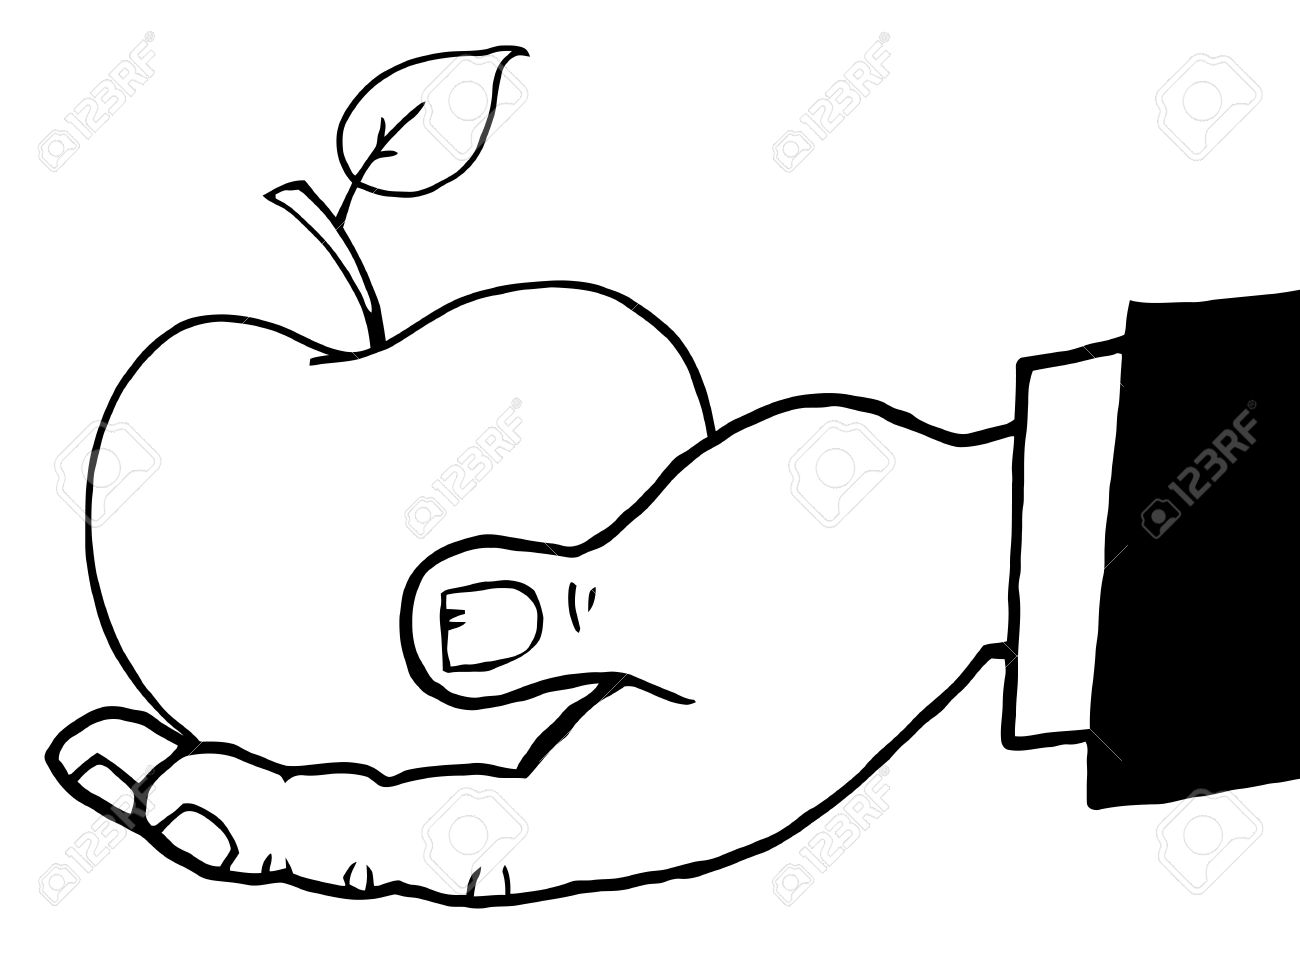 1300x956 Outlined Hand Holding A Red Apple Royalty Free Cliparts, Vectors